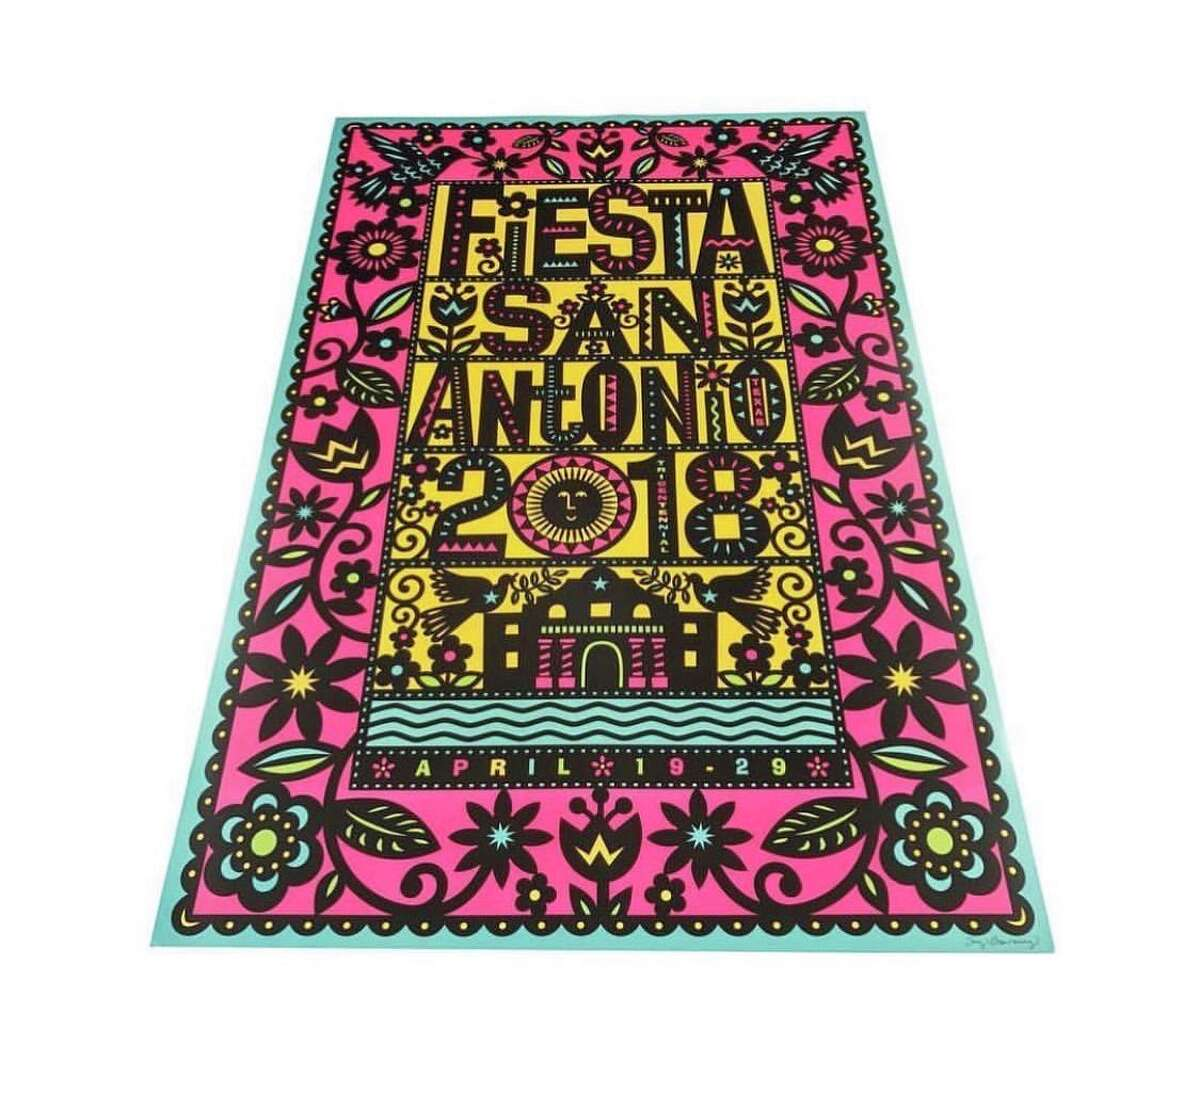 The 2018 Fiesta poster by Suzan Browning.